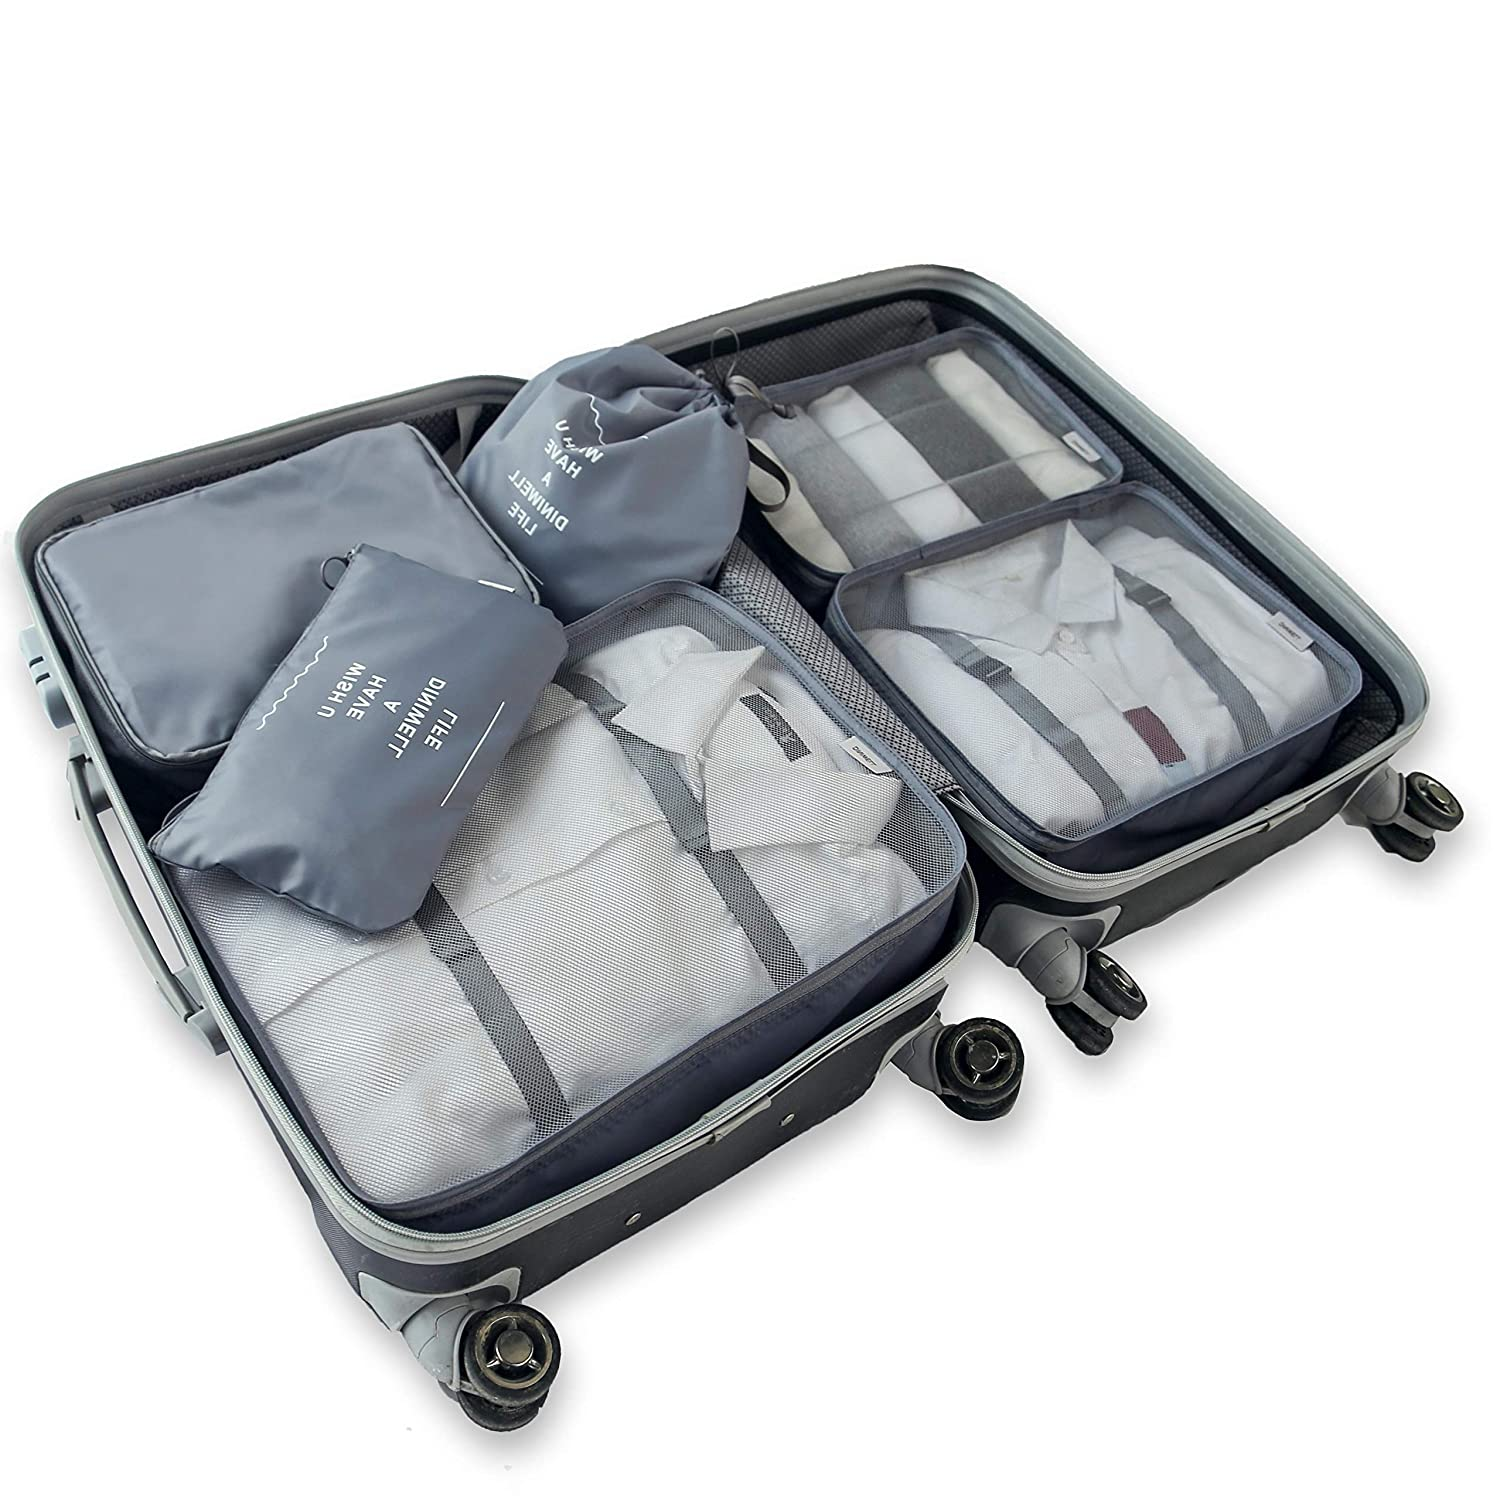 6PCS Luggage Bags for Packing,Packing Cube Bag Mesh Organizers Bags for Packing Suicase